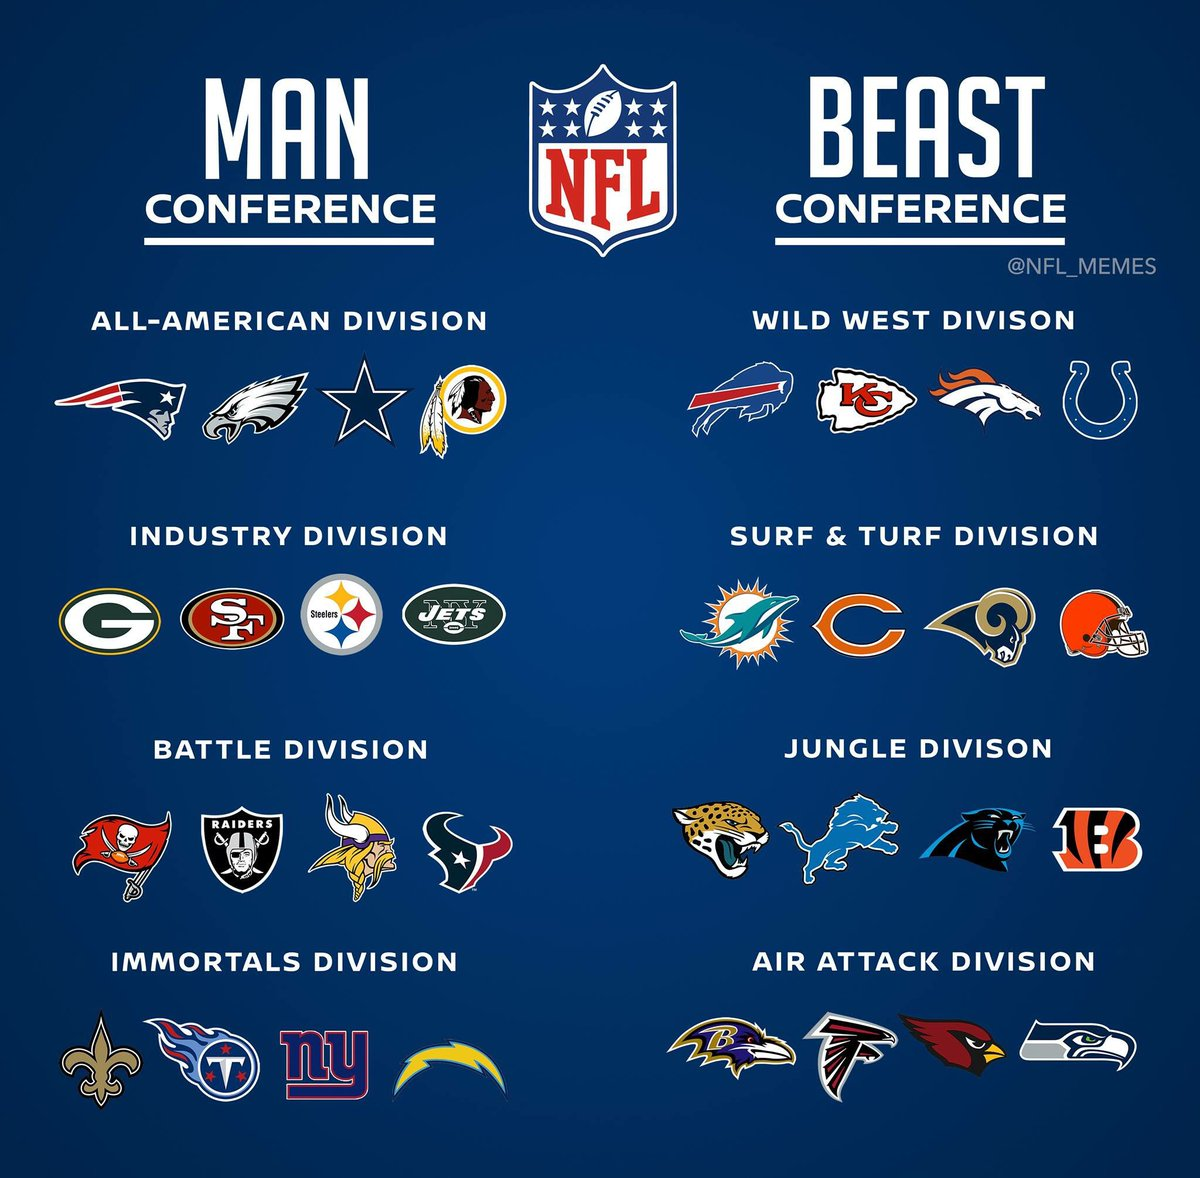 Would it be cool for the NFL to realign conferences like this for a season? 🤔